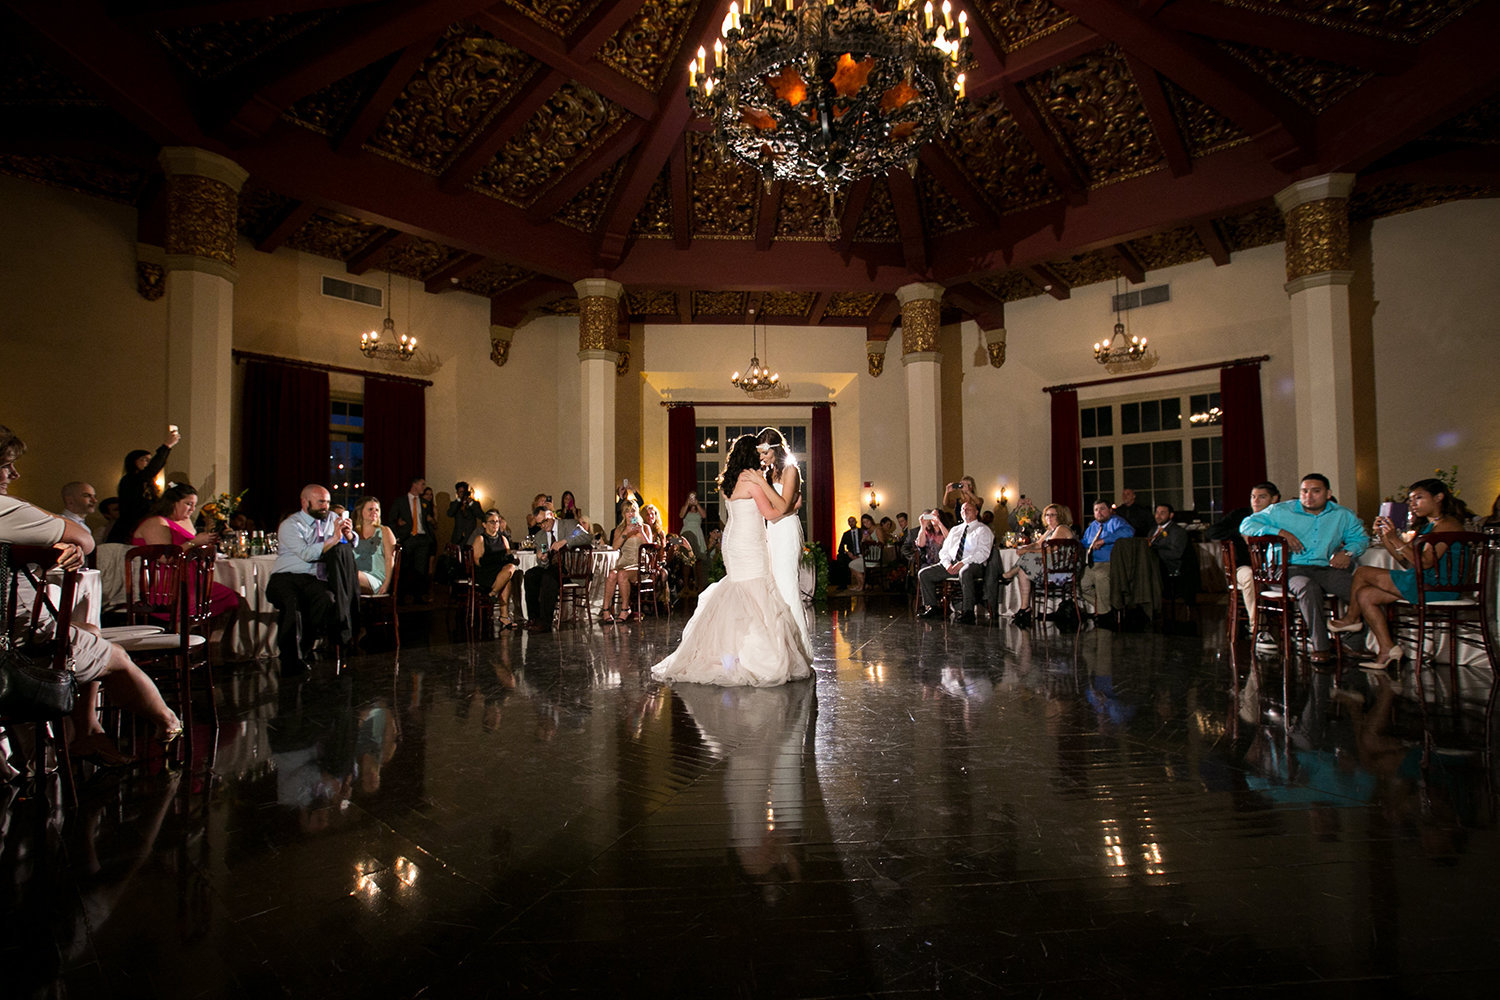 First Dance in an ornate and moody reception room | The El Cortez in San Diego